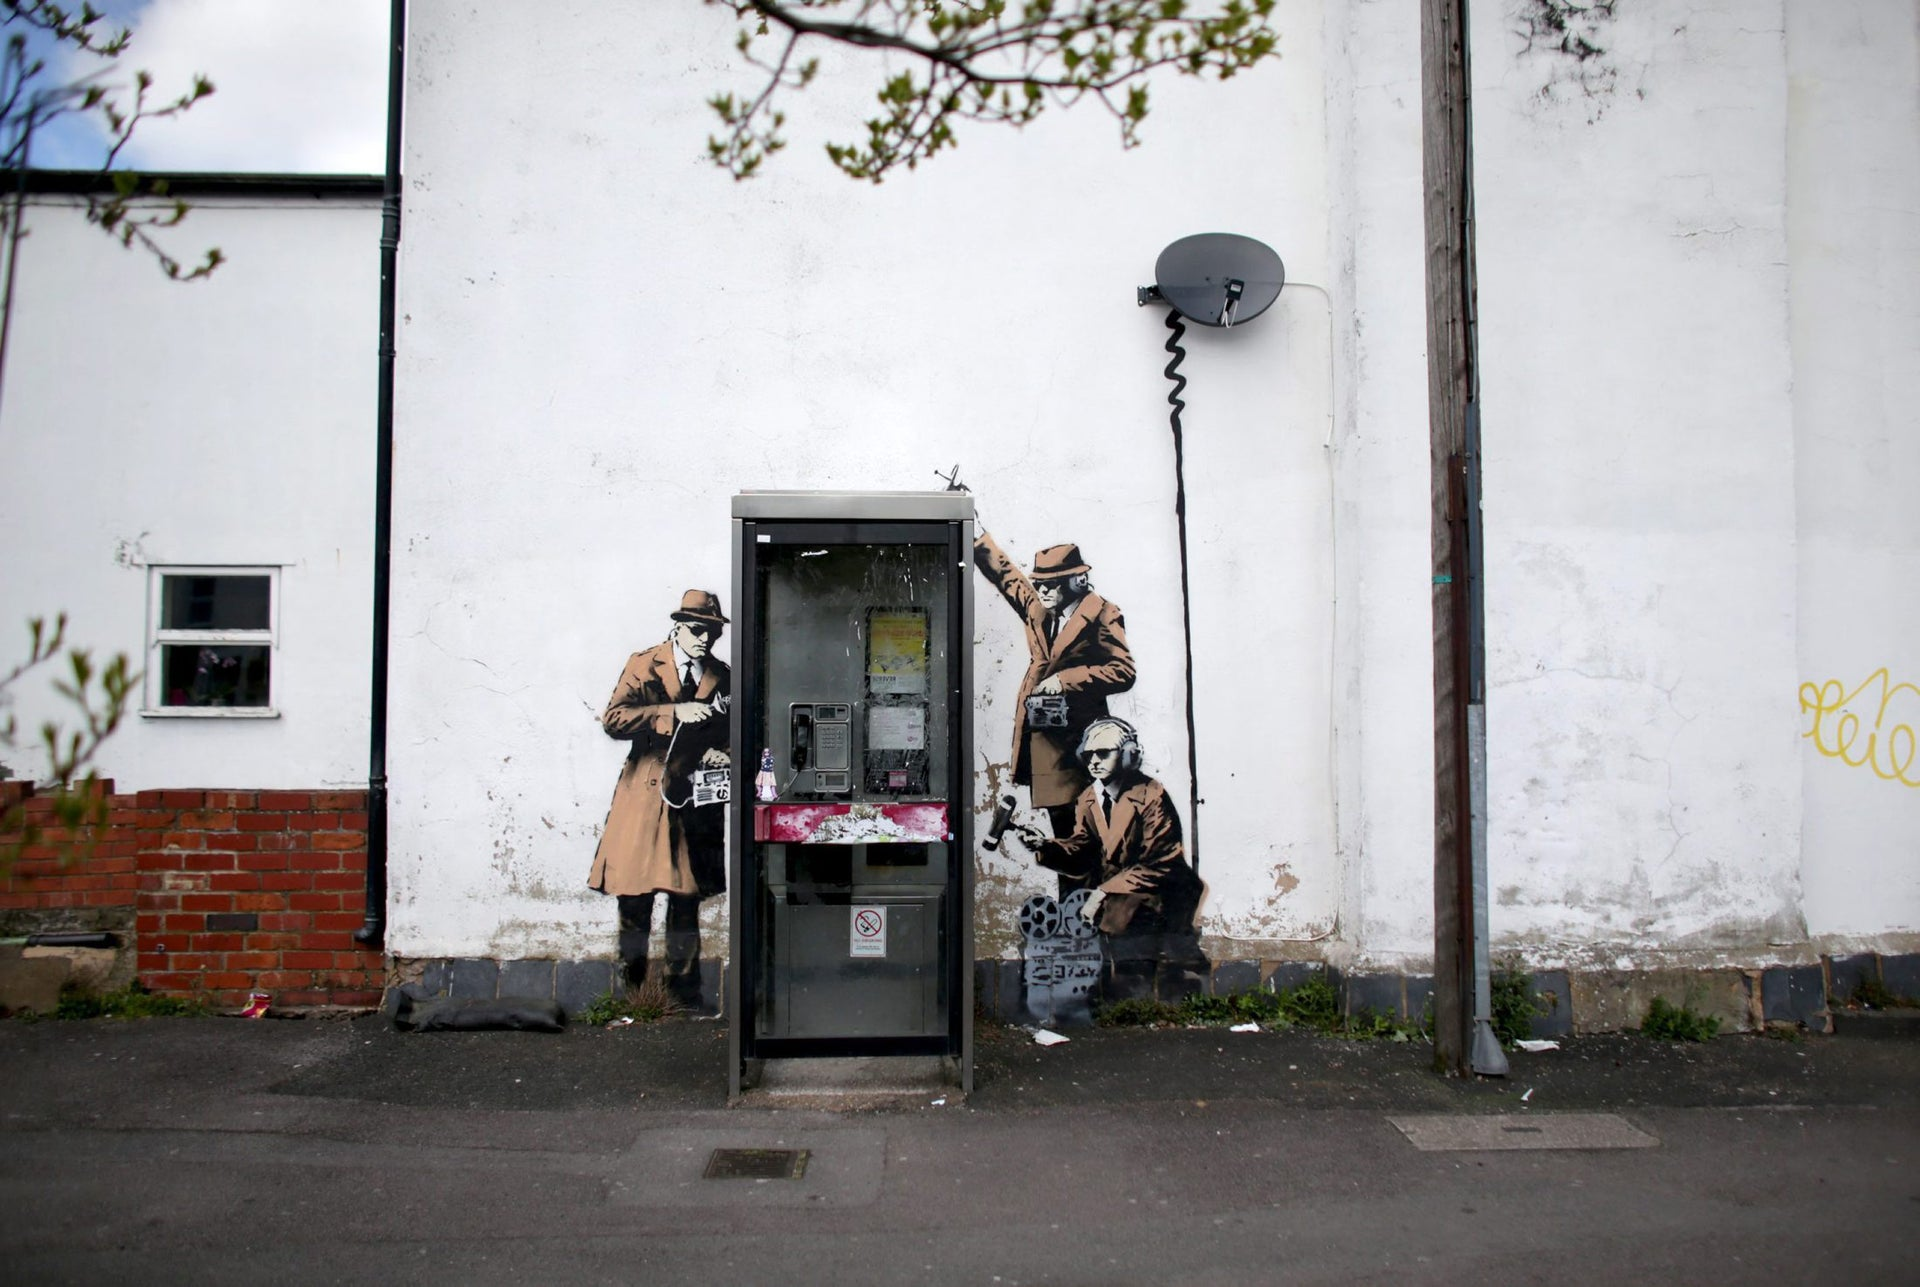 A piece of new graffiti street art, claimed to be by Banksy, that appeared on the side of a house in Cheltenham, England, April 14, 2014.